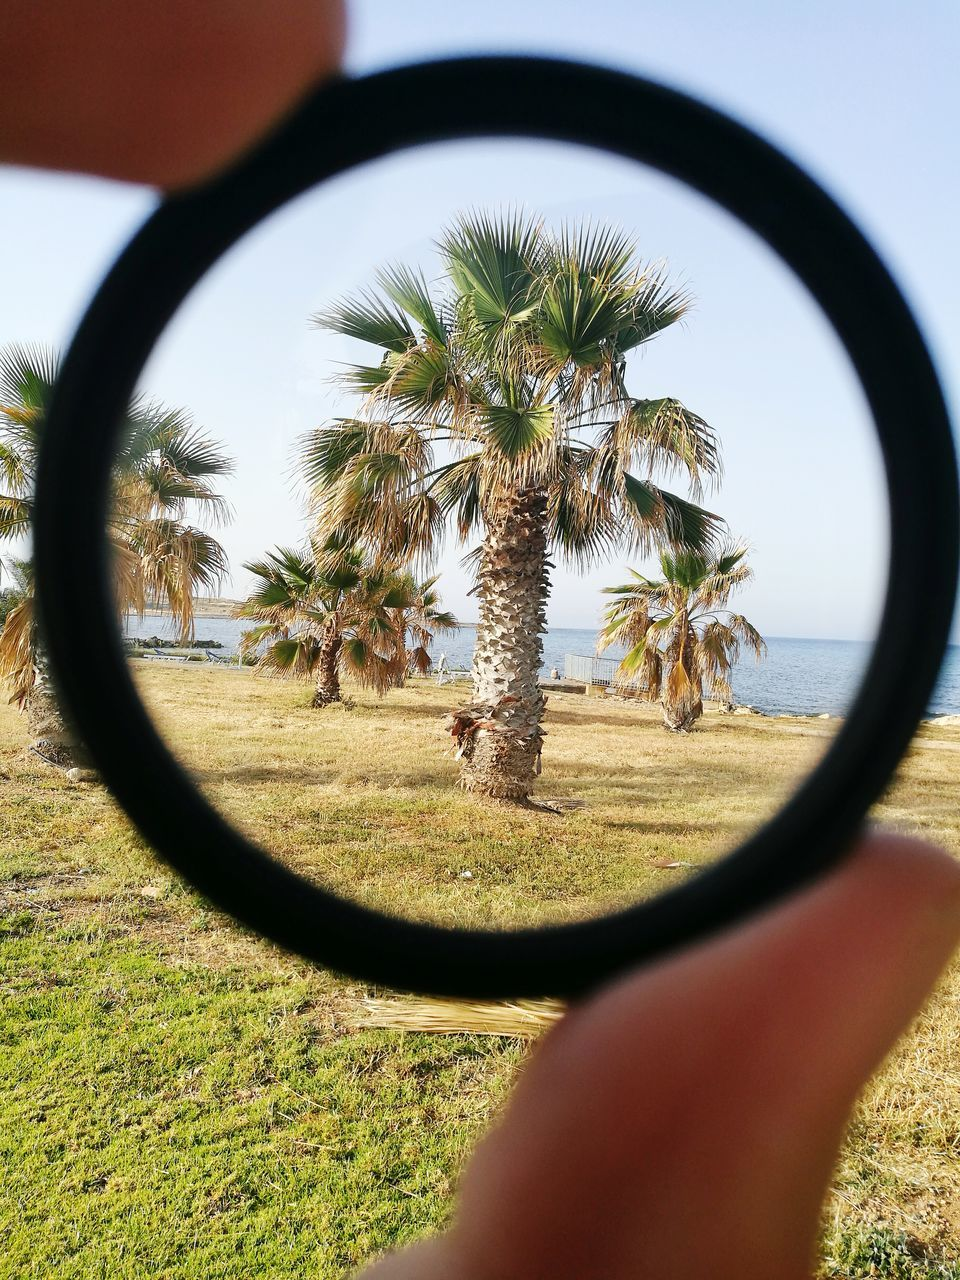 tree, real people, palm tree, magnifying glass, day, one person, nature, side-view mirror, sky, tree trunk, grass, landscape, beauty in nature, lifestyles, outdoors, fish-eye lens, close-up